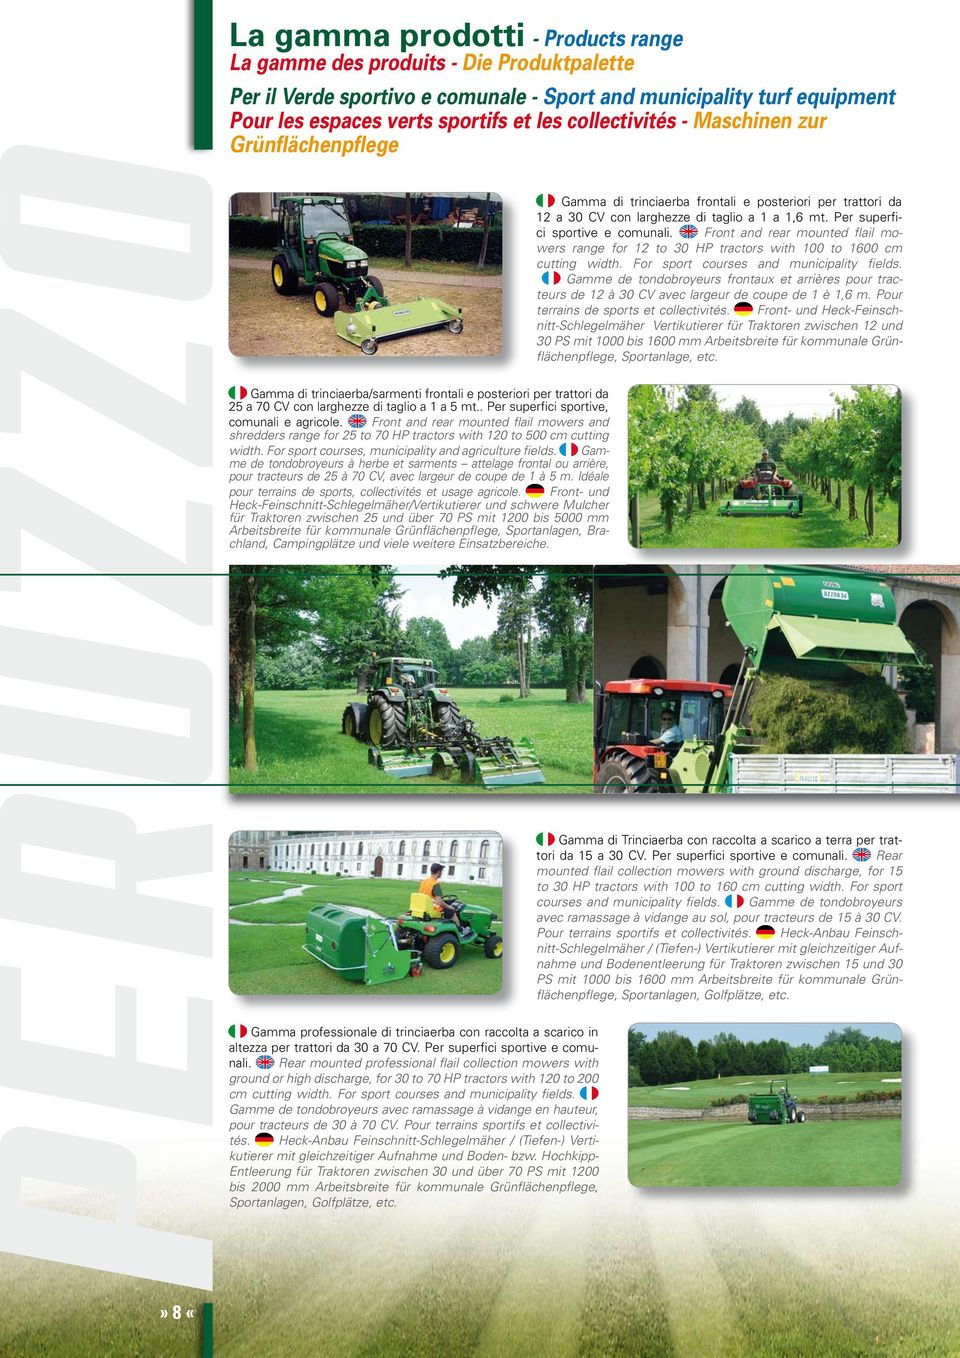 Front and rear mounted flail mowers range for 12 to 30 HP tractors with 100 to 1600 cm cutting width. For sport courses and municipality fields.